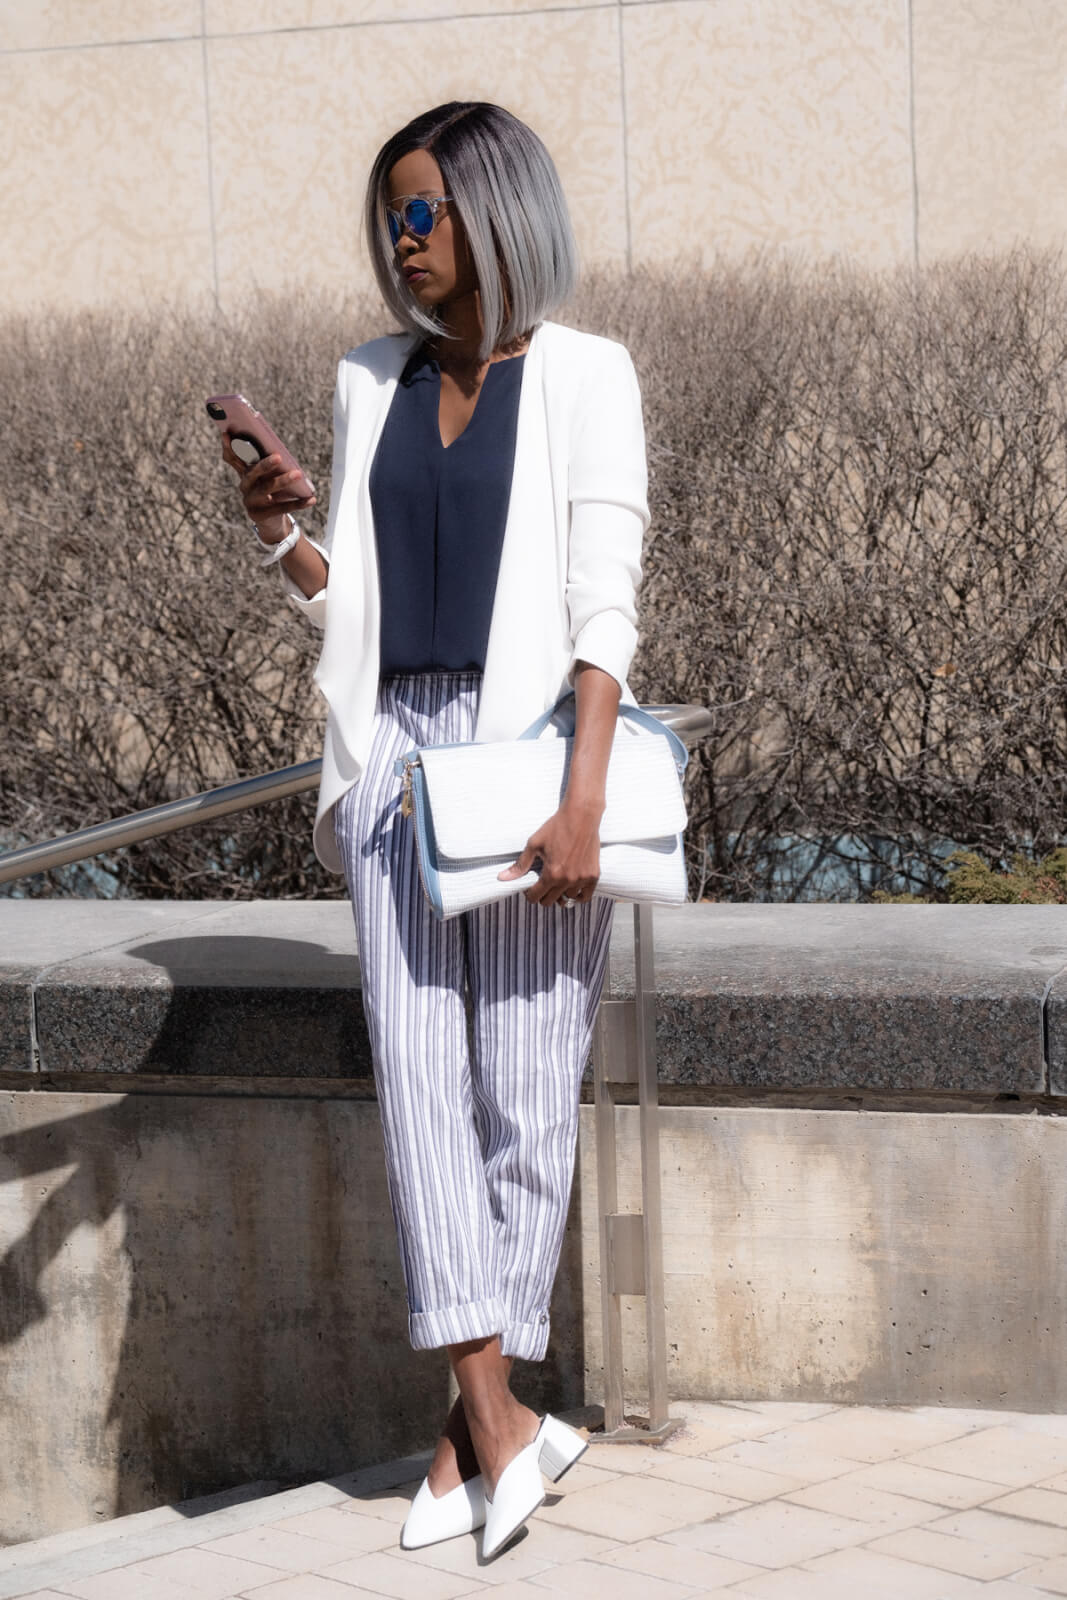 Striped pants, summer fashion, summer trends, white mules, summer outfit ideas